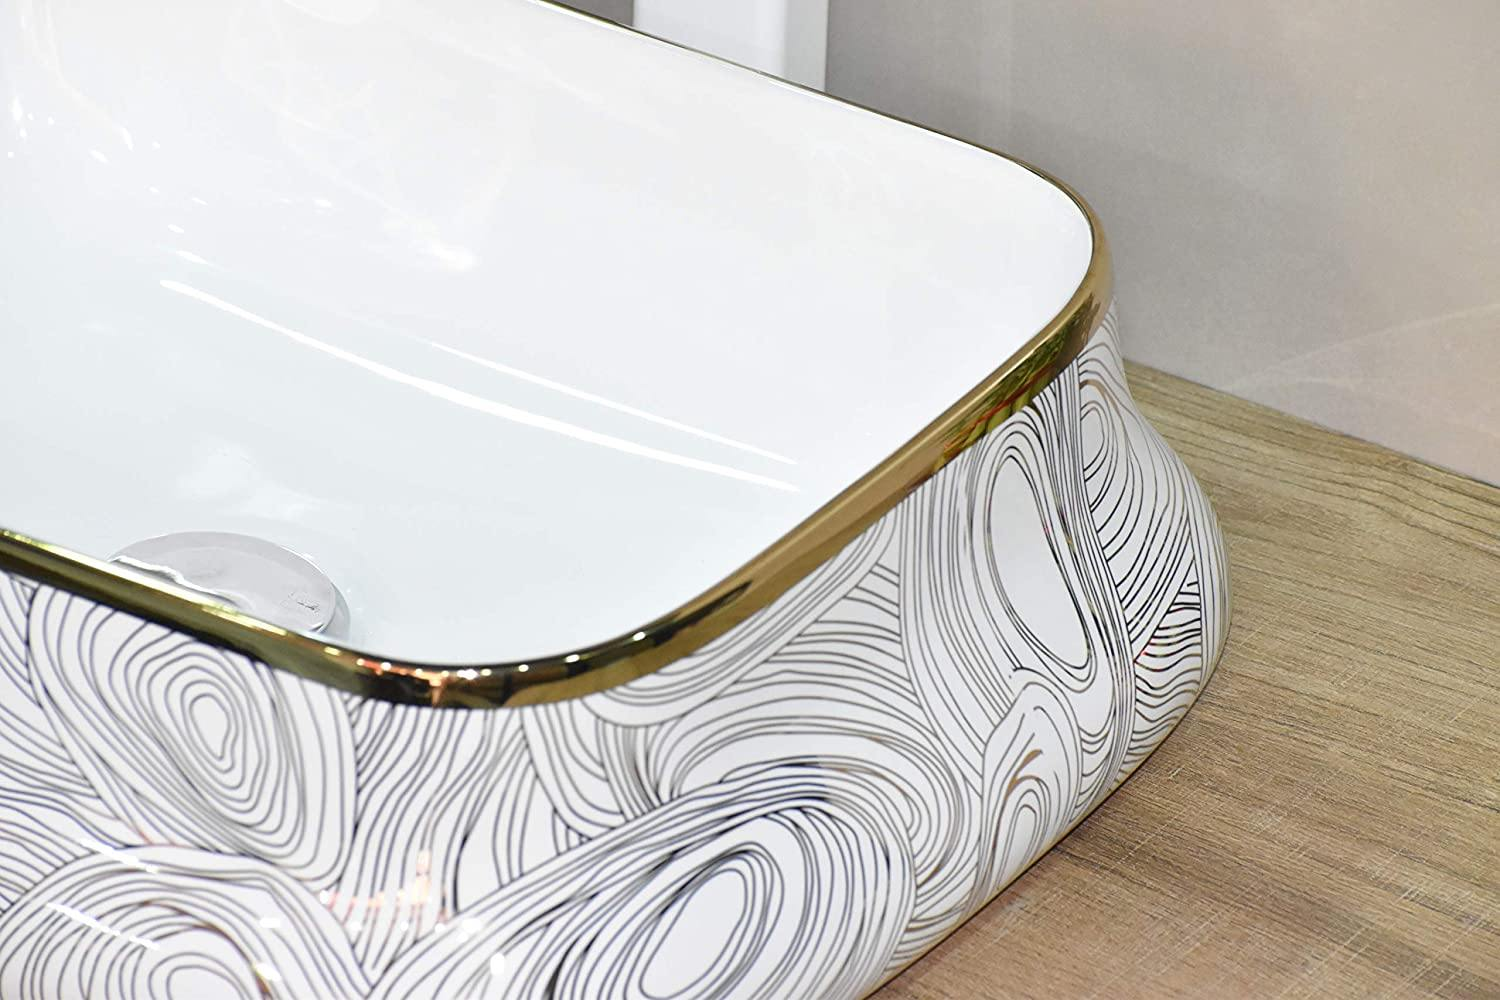 Lavatory Above Counter Ceramic Bathroom Vessel Sink Art Wash Basin Rectangle shape in Glossy Finish White Gold Color 46 x 35 x 15 CM